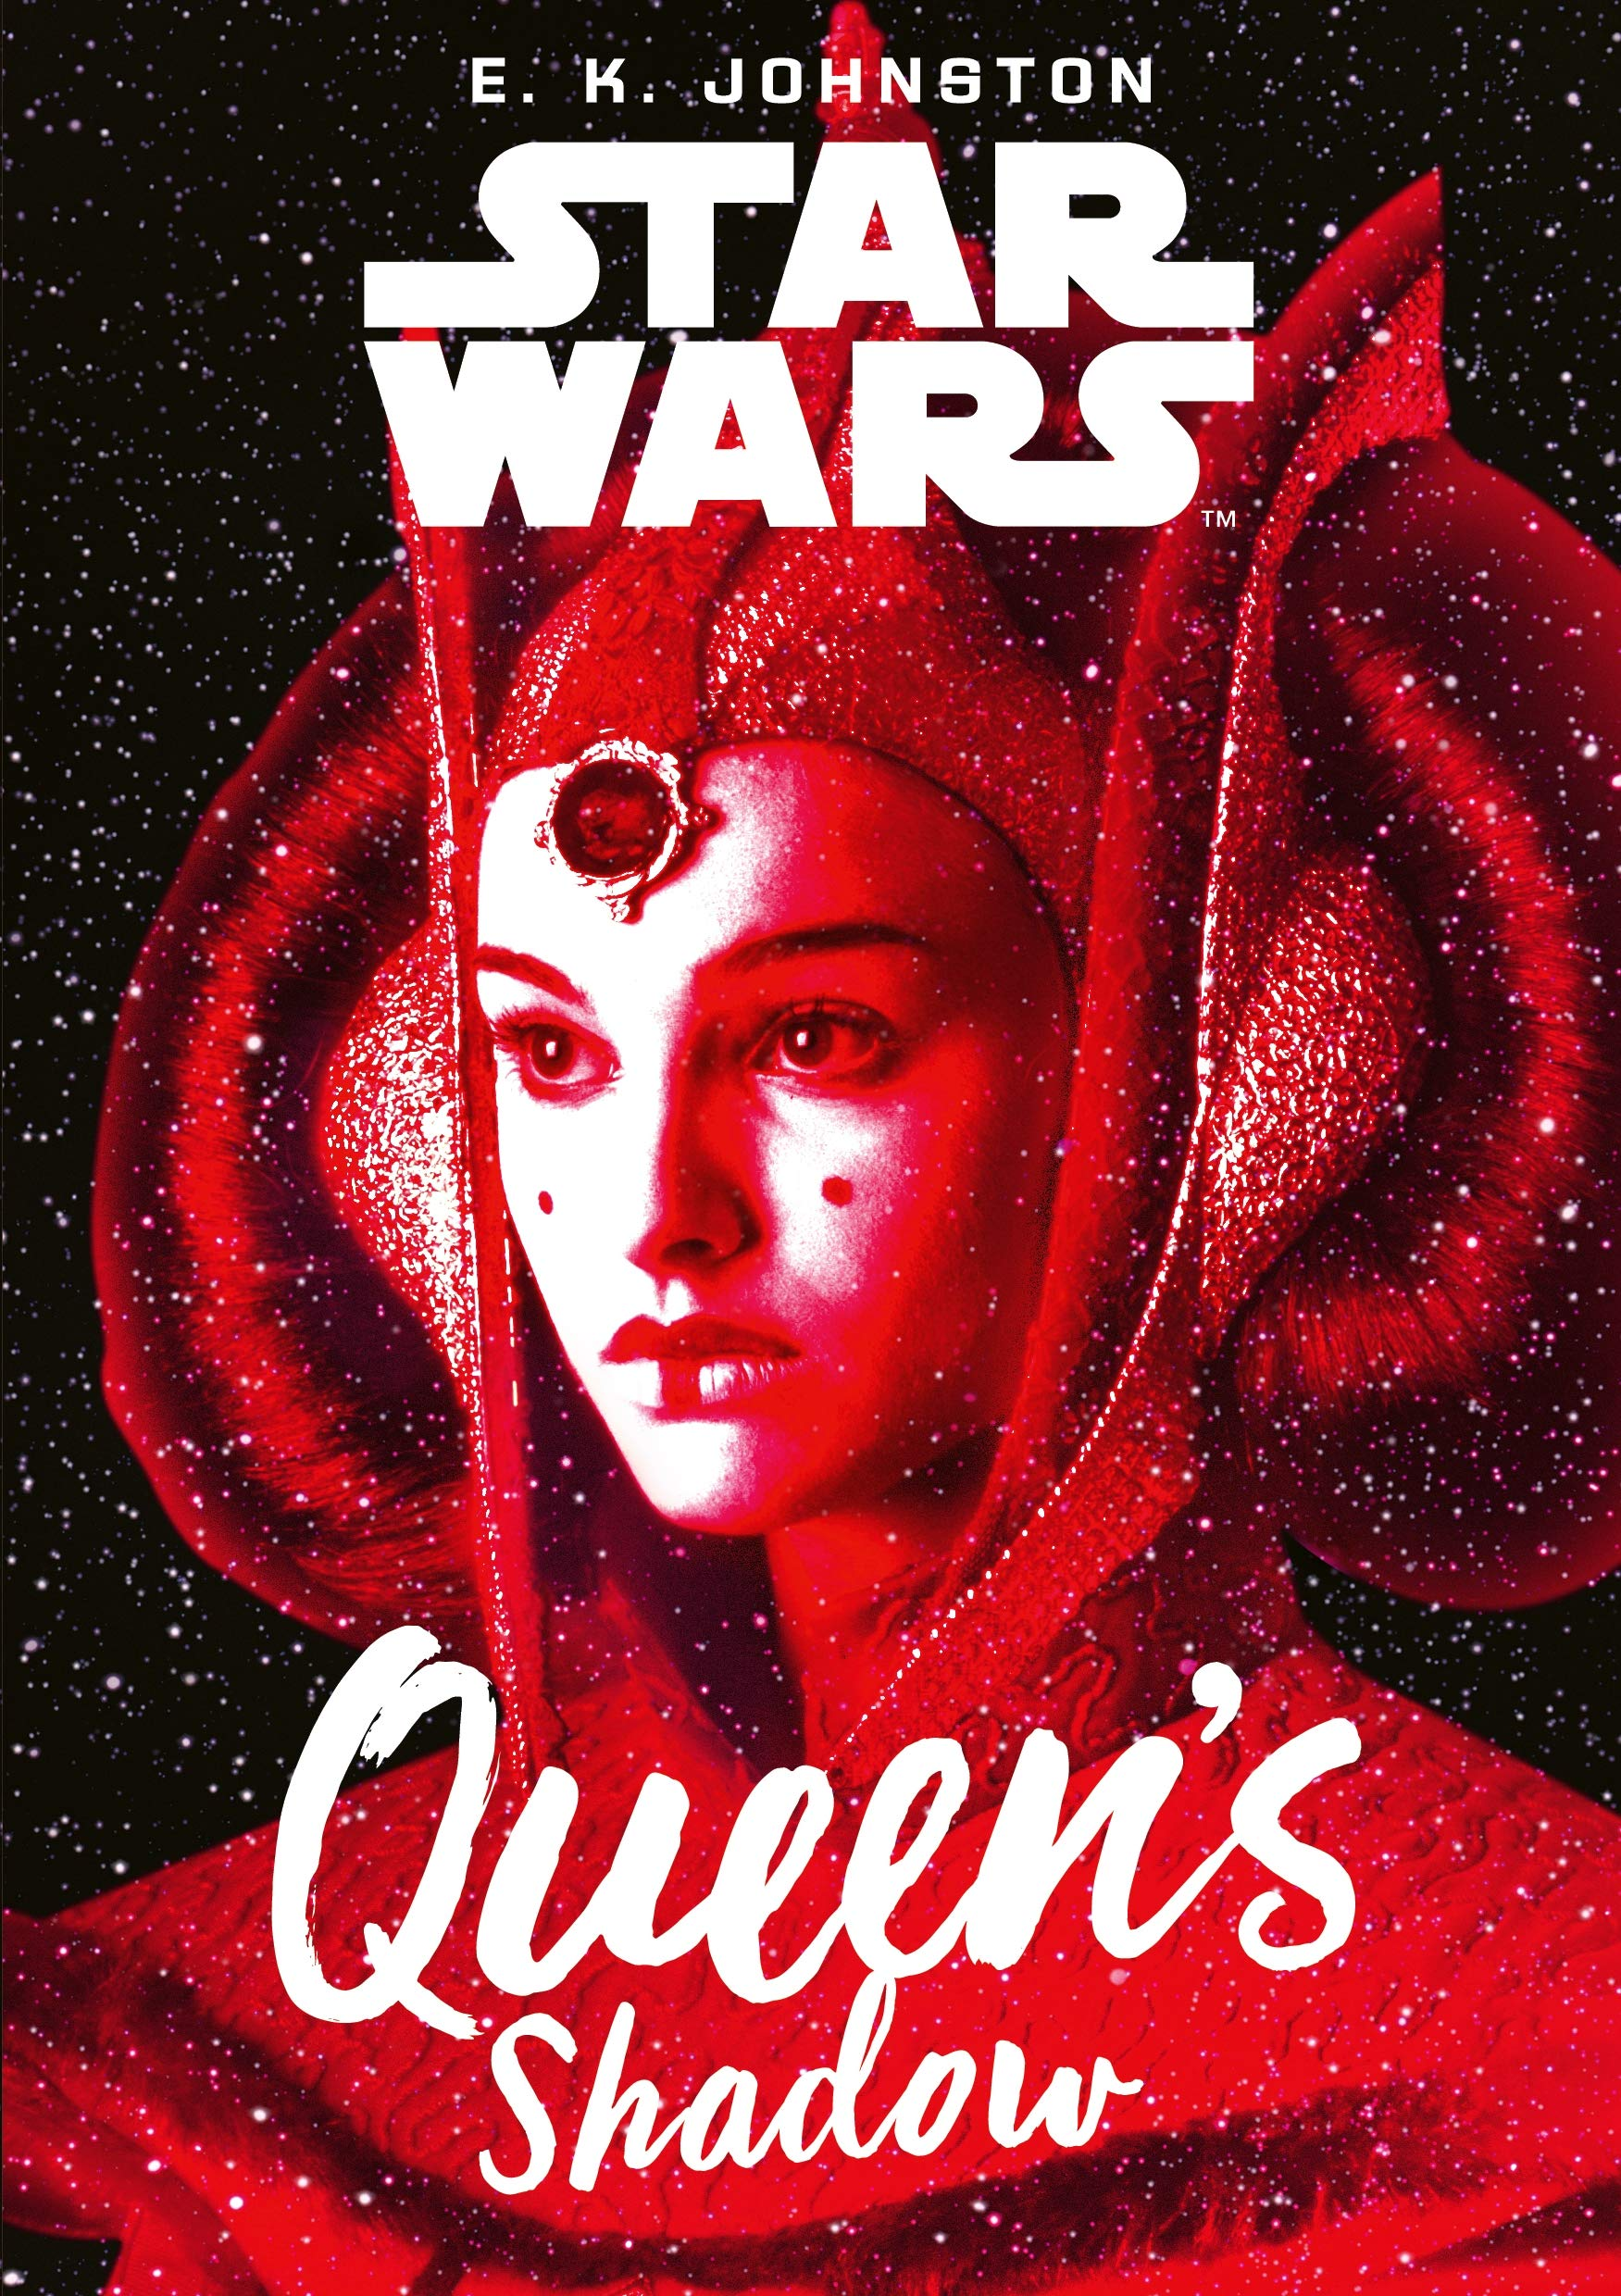 Star Wars: Queen's Shadow: Amazon.co.uk: E. K. Johnston: Books